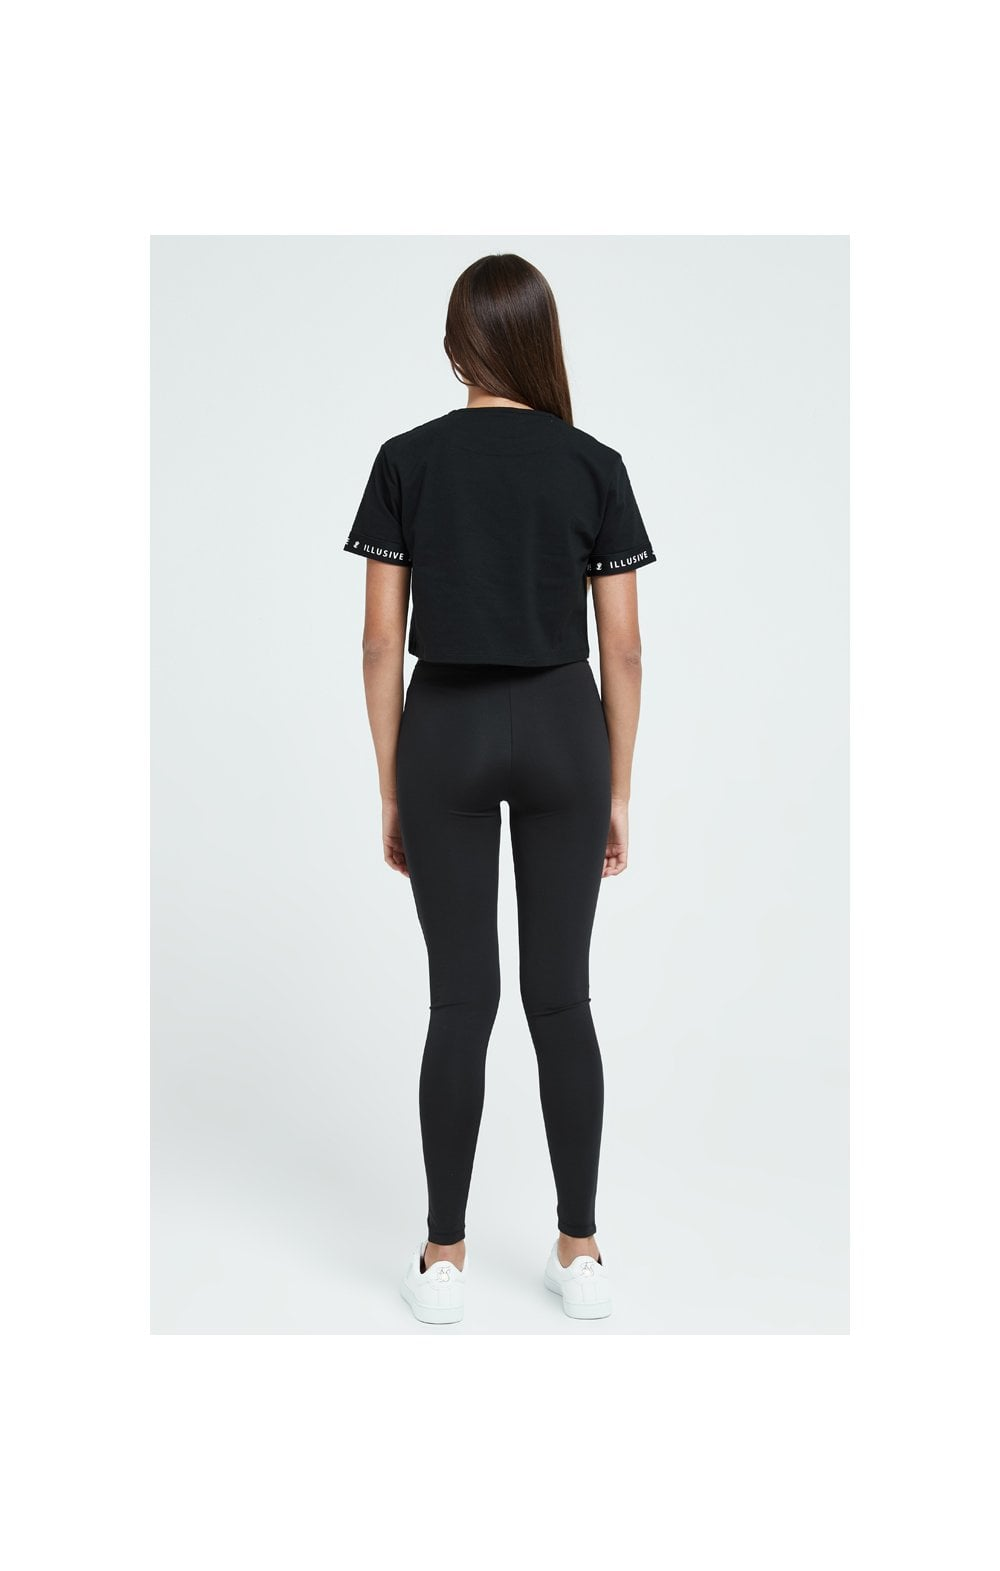 Load image into Gallery viewer, Illusive London Core Crop Tee - Black (5)